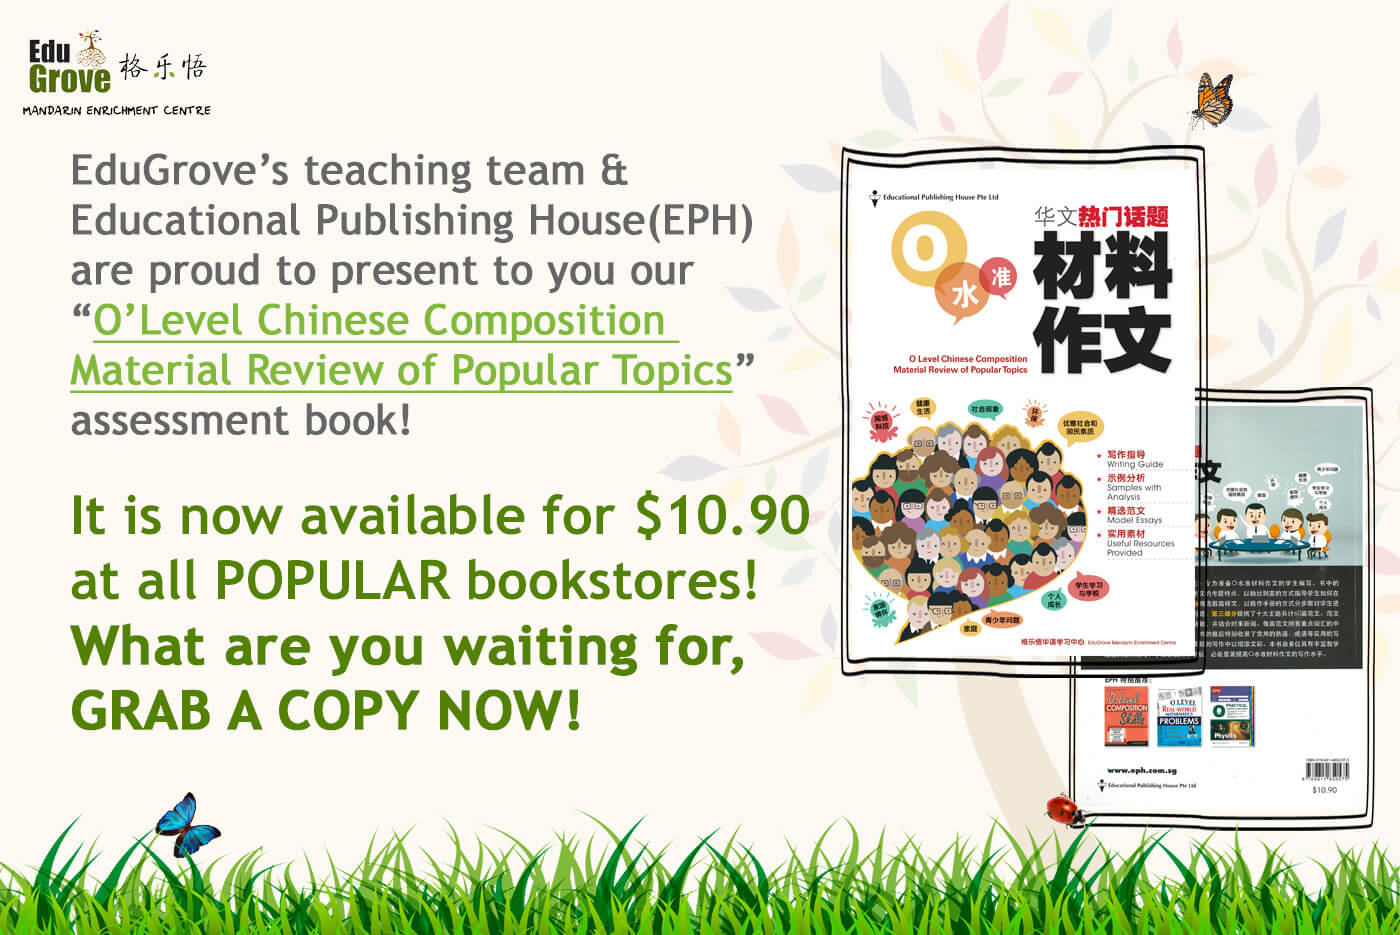 o level chinese composition assessment book